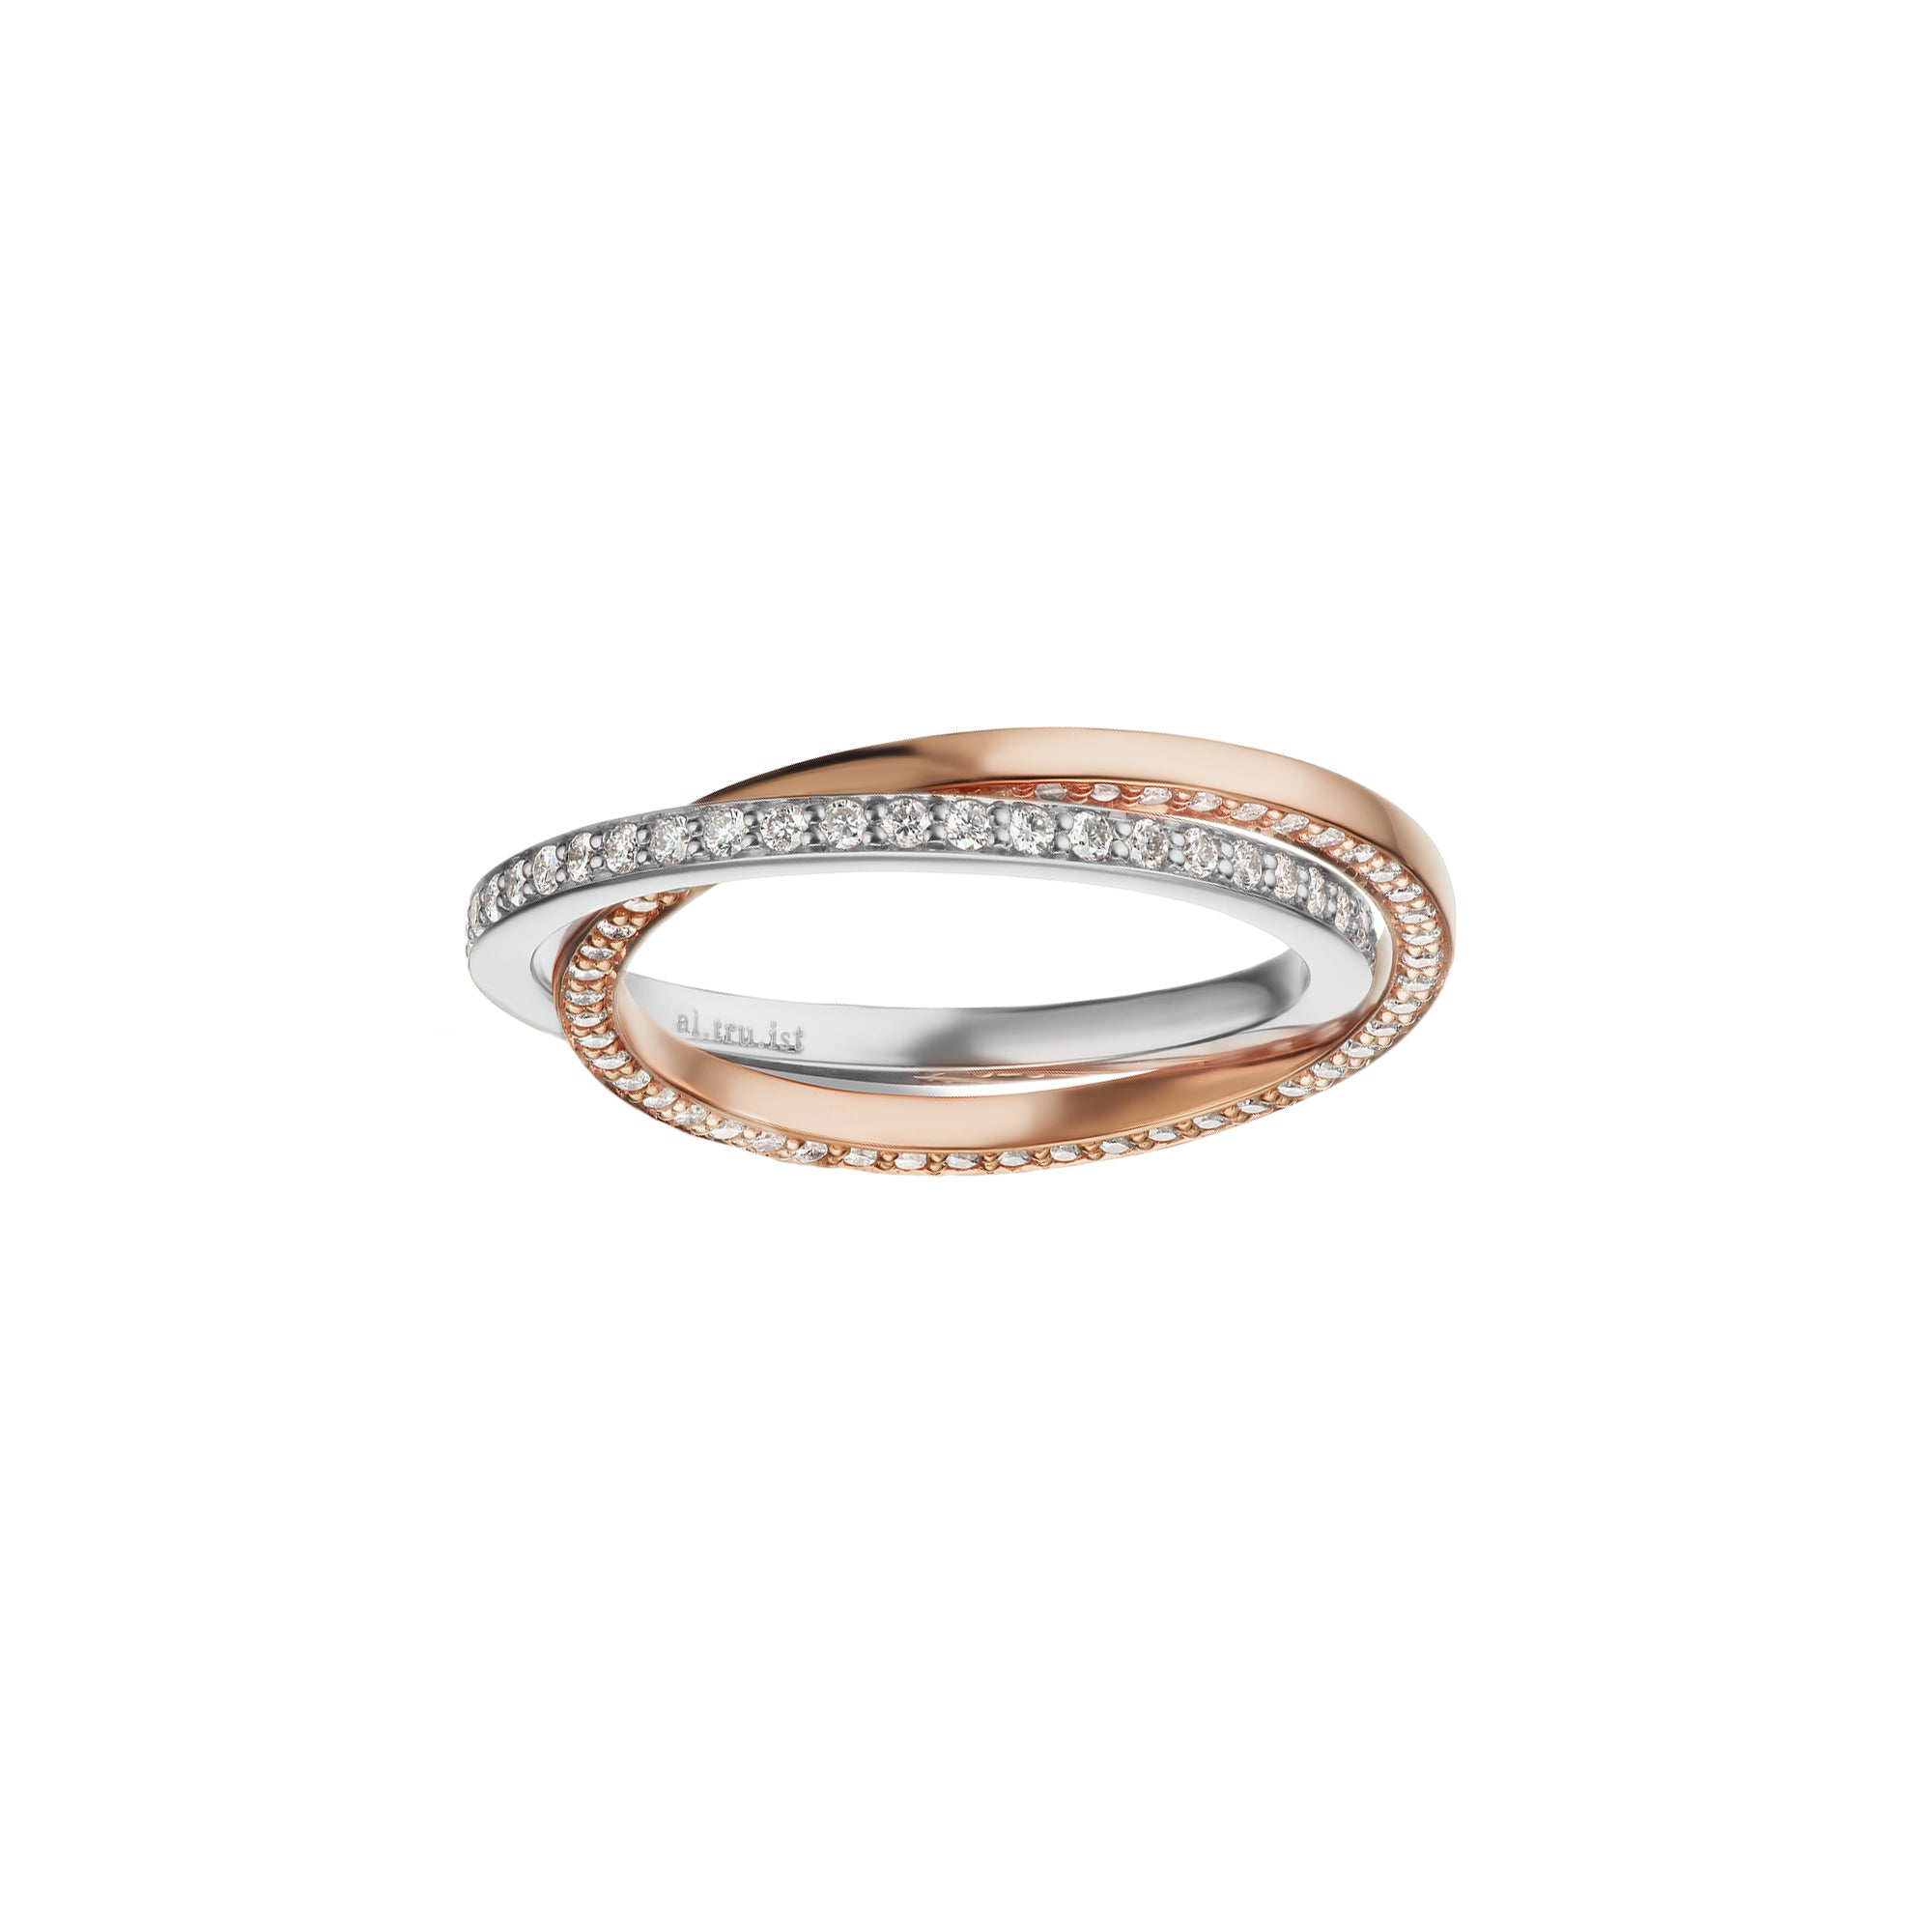 Altruist Espionne Ring II - Rose & White Gold - Rings - Broken English Jewelry